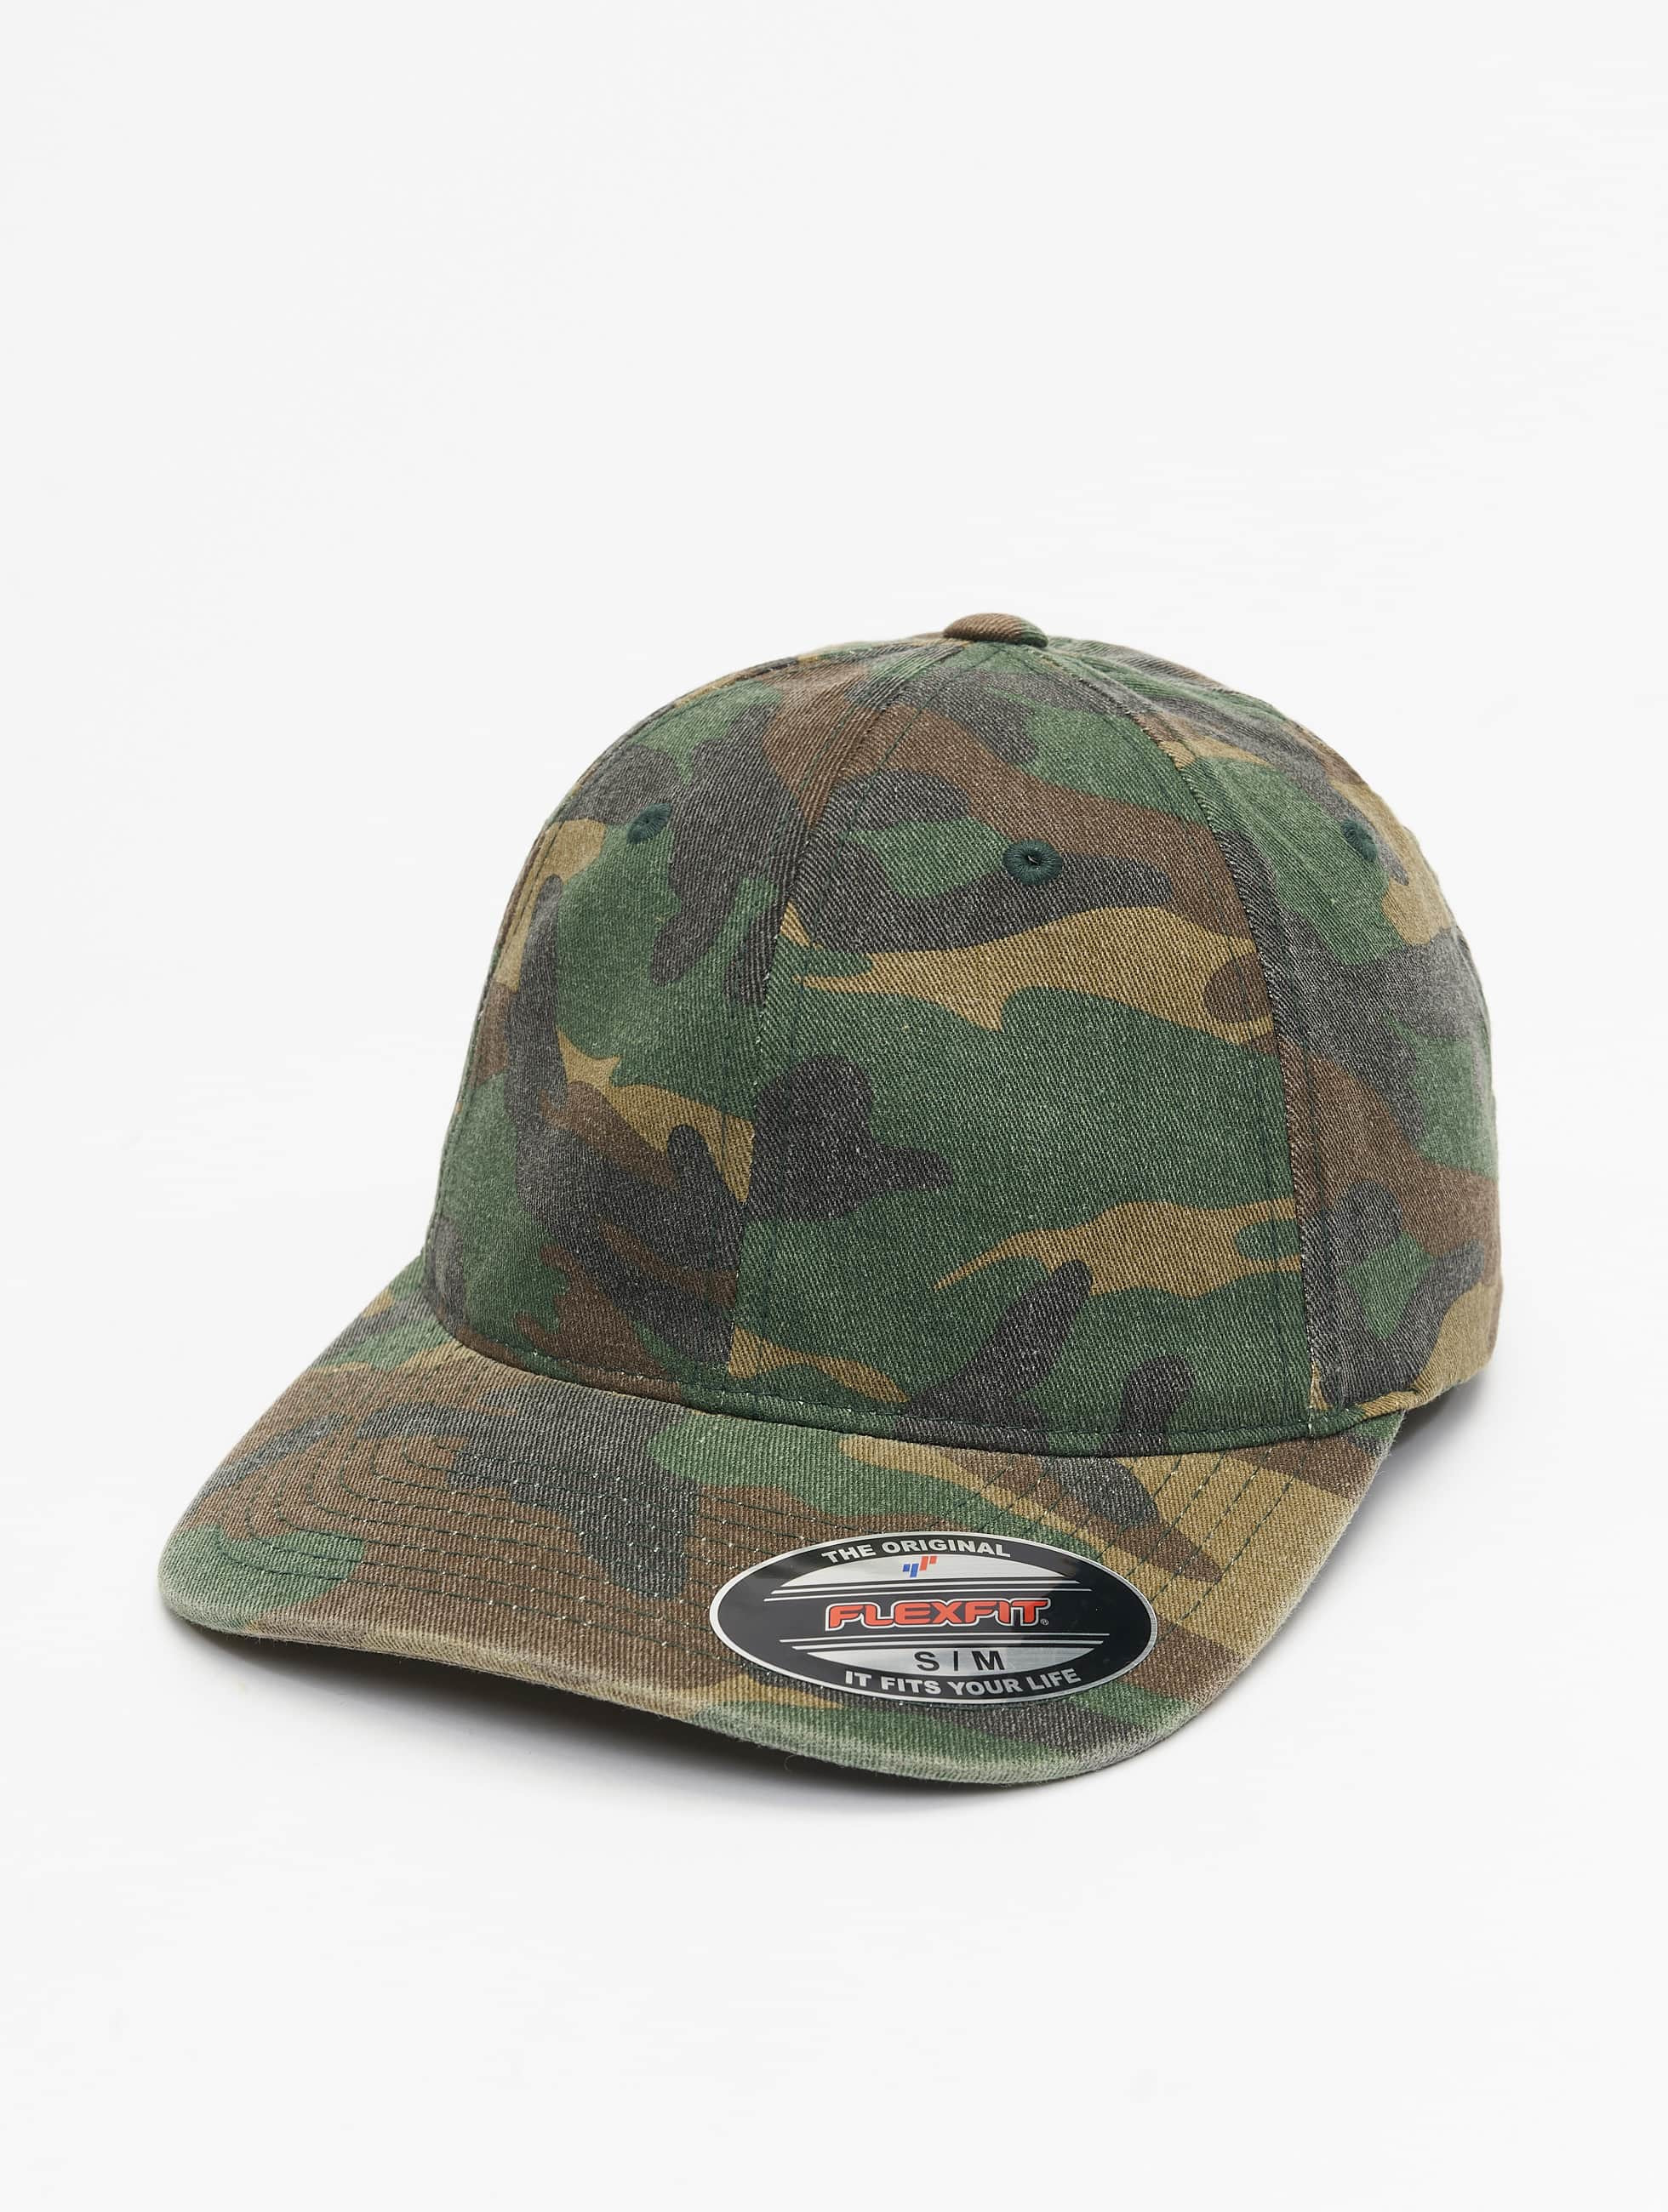 Flexfit Casquette Flex Fitted Garment Washed Camo vert